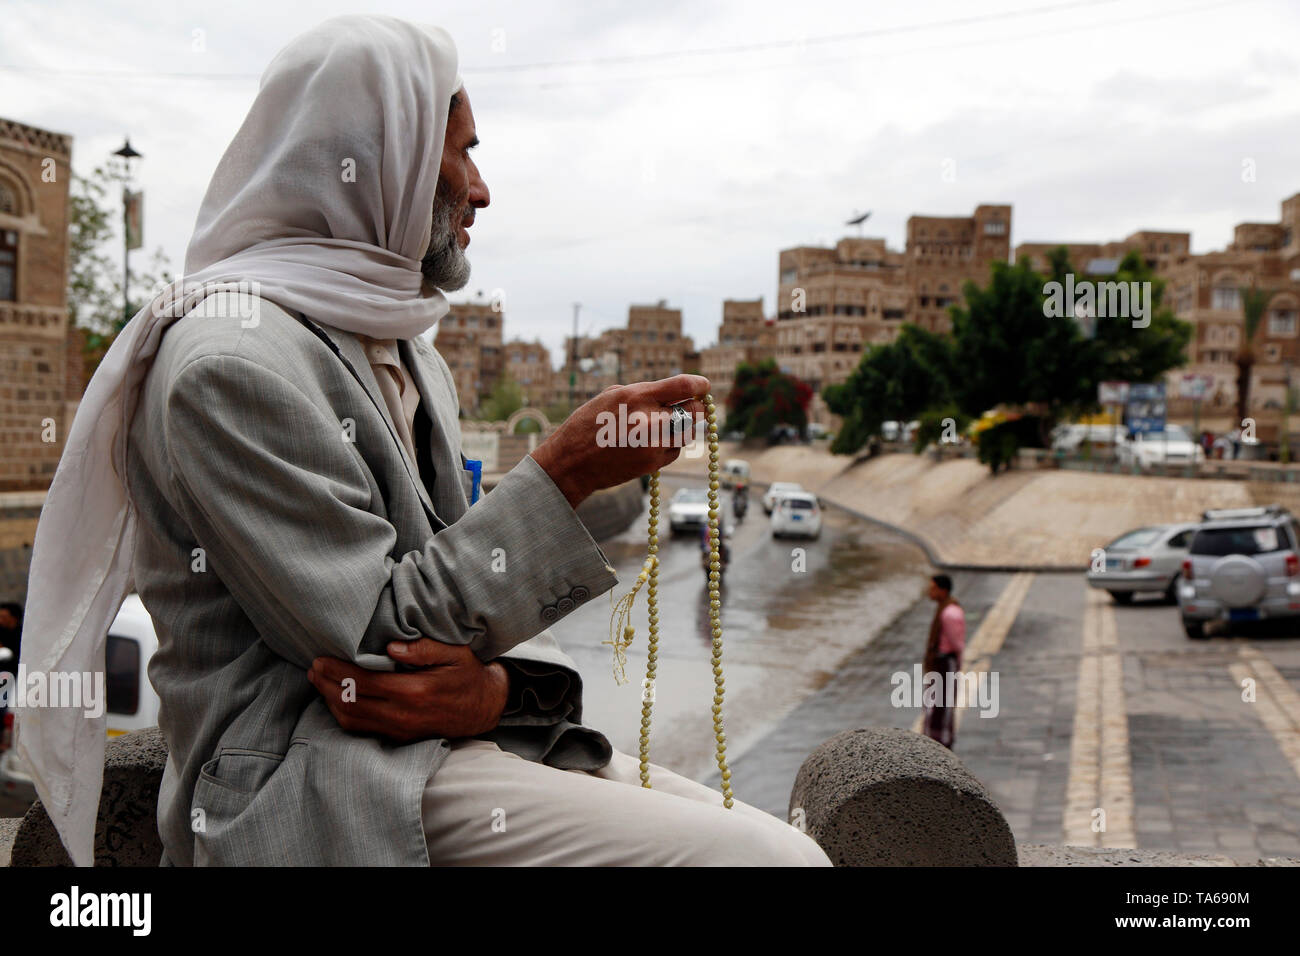 Sanaa, Yemen. 22nd May, 2019. A Yemeni man carries a rosary during the Muslim holy month of Ramadan in Sanaa, Yemen, on May 22, 2019. Rosary, or Tesbih, is a small string of prayer beads that is carried by many Yemeni men during the holy month of Ramadan. Credit: Mohammed Mohammed/Xinhua/Alamy Live News - Stock Image